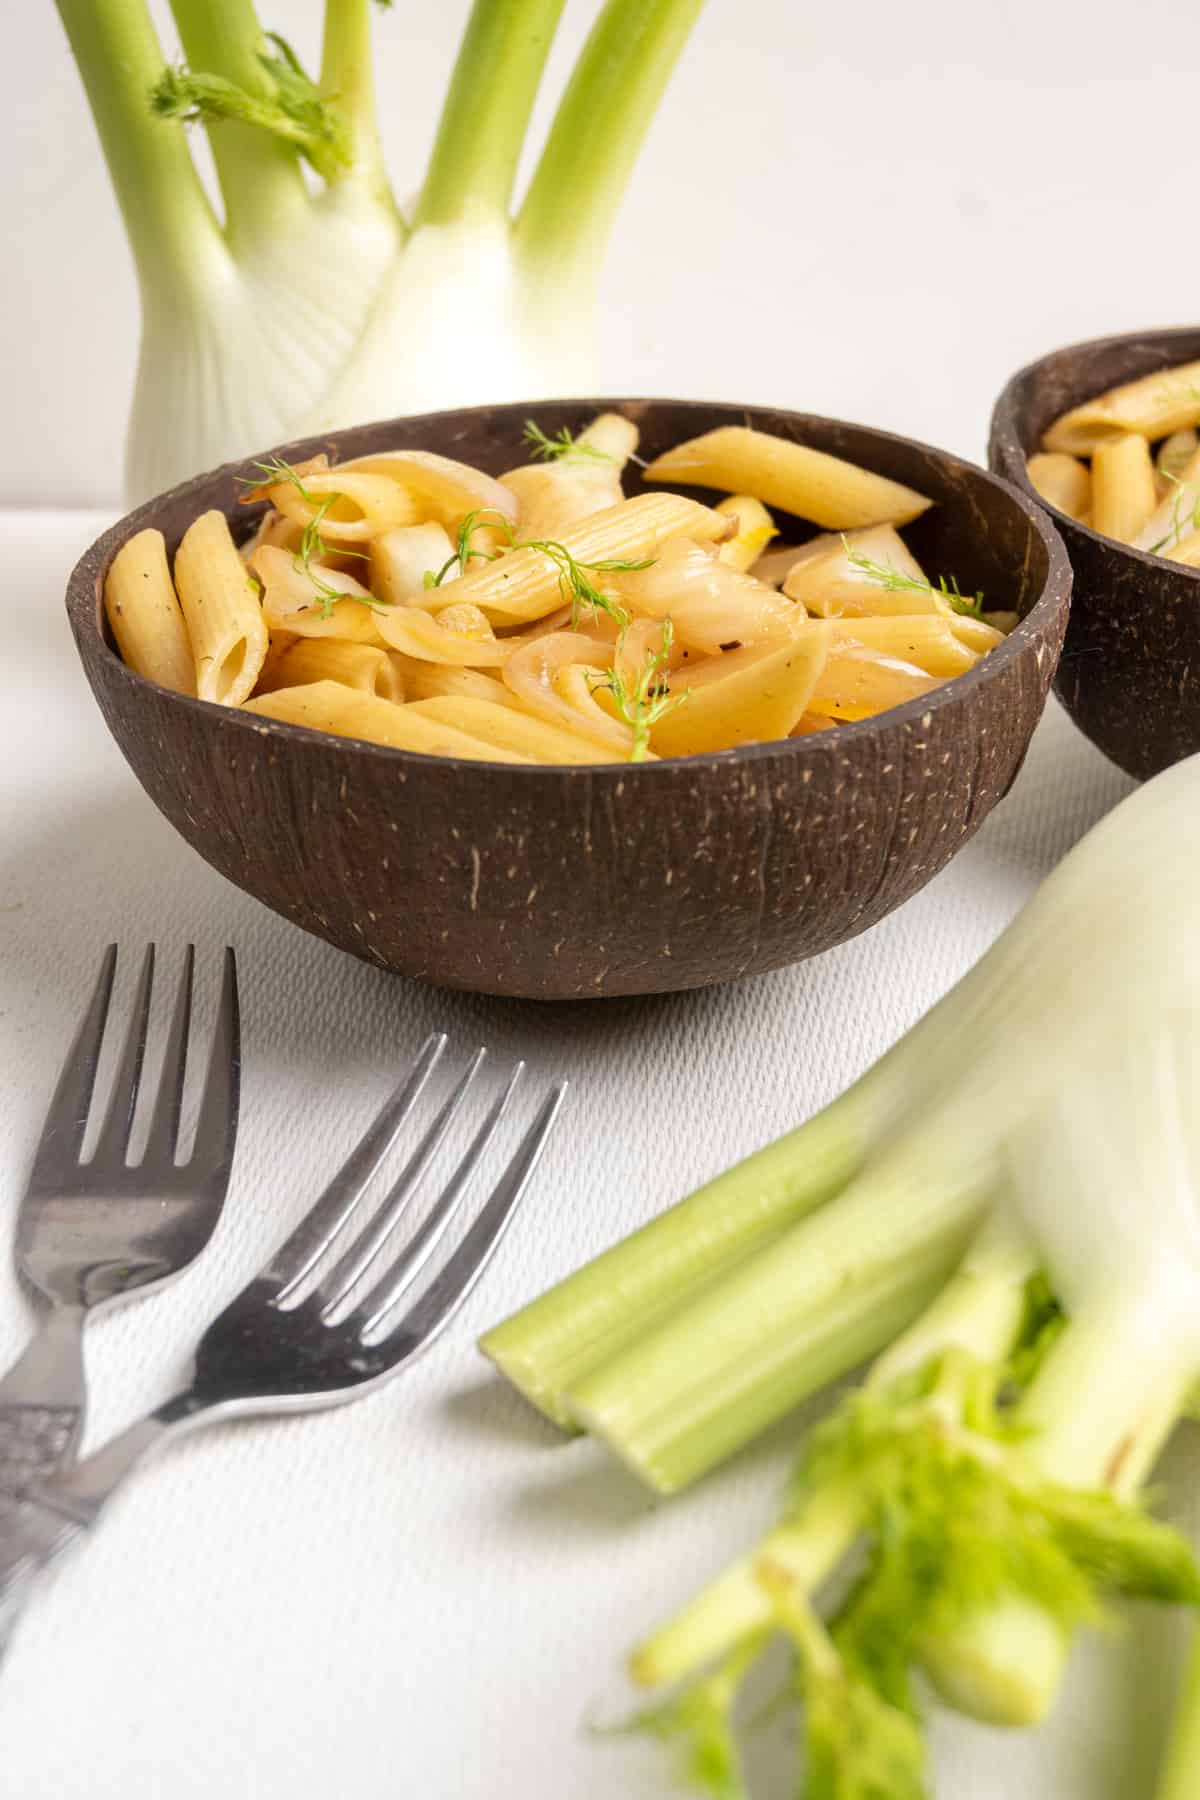 A portion of fennel pasta served up in a coconut bowl. Two bulb of fennel serve as decoration for the photograph.